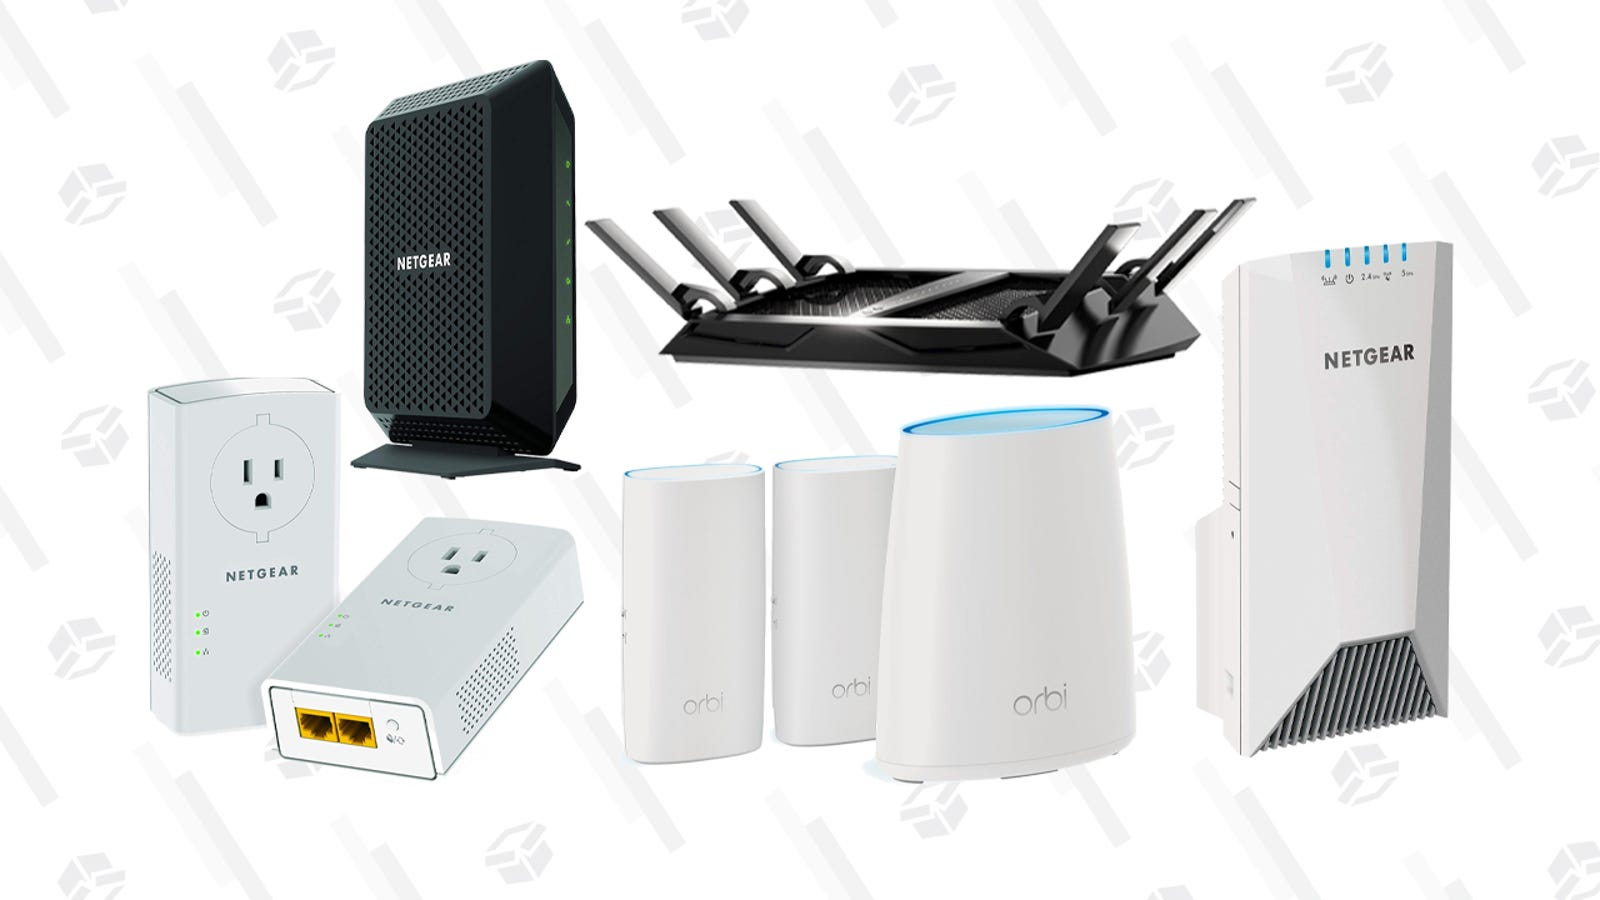 Upgrade Your Home Network With Today's Netgear Gold Box